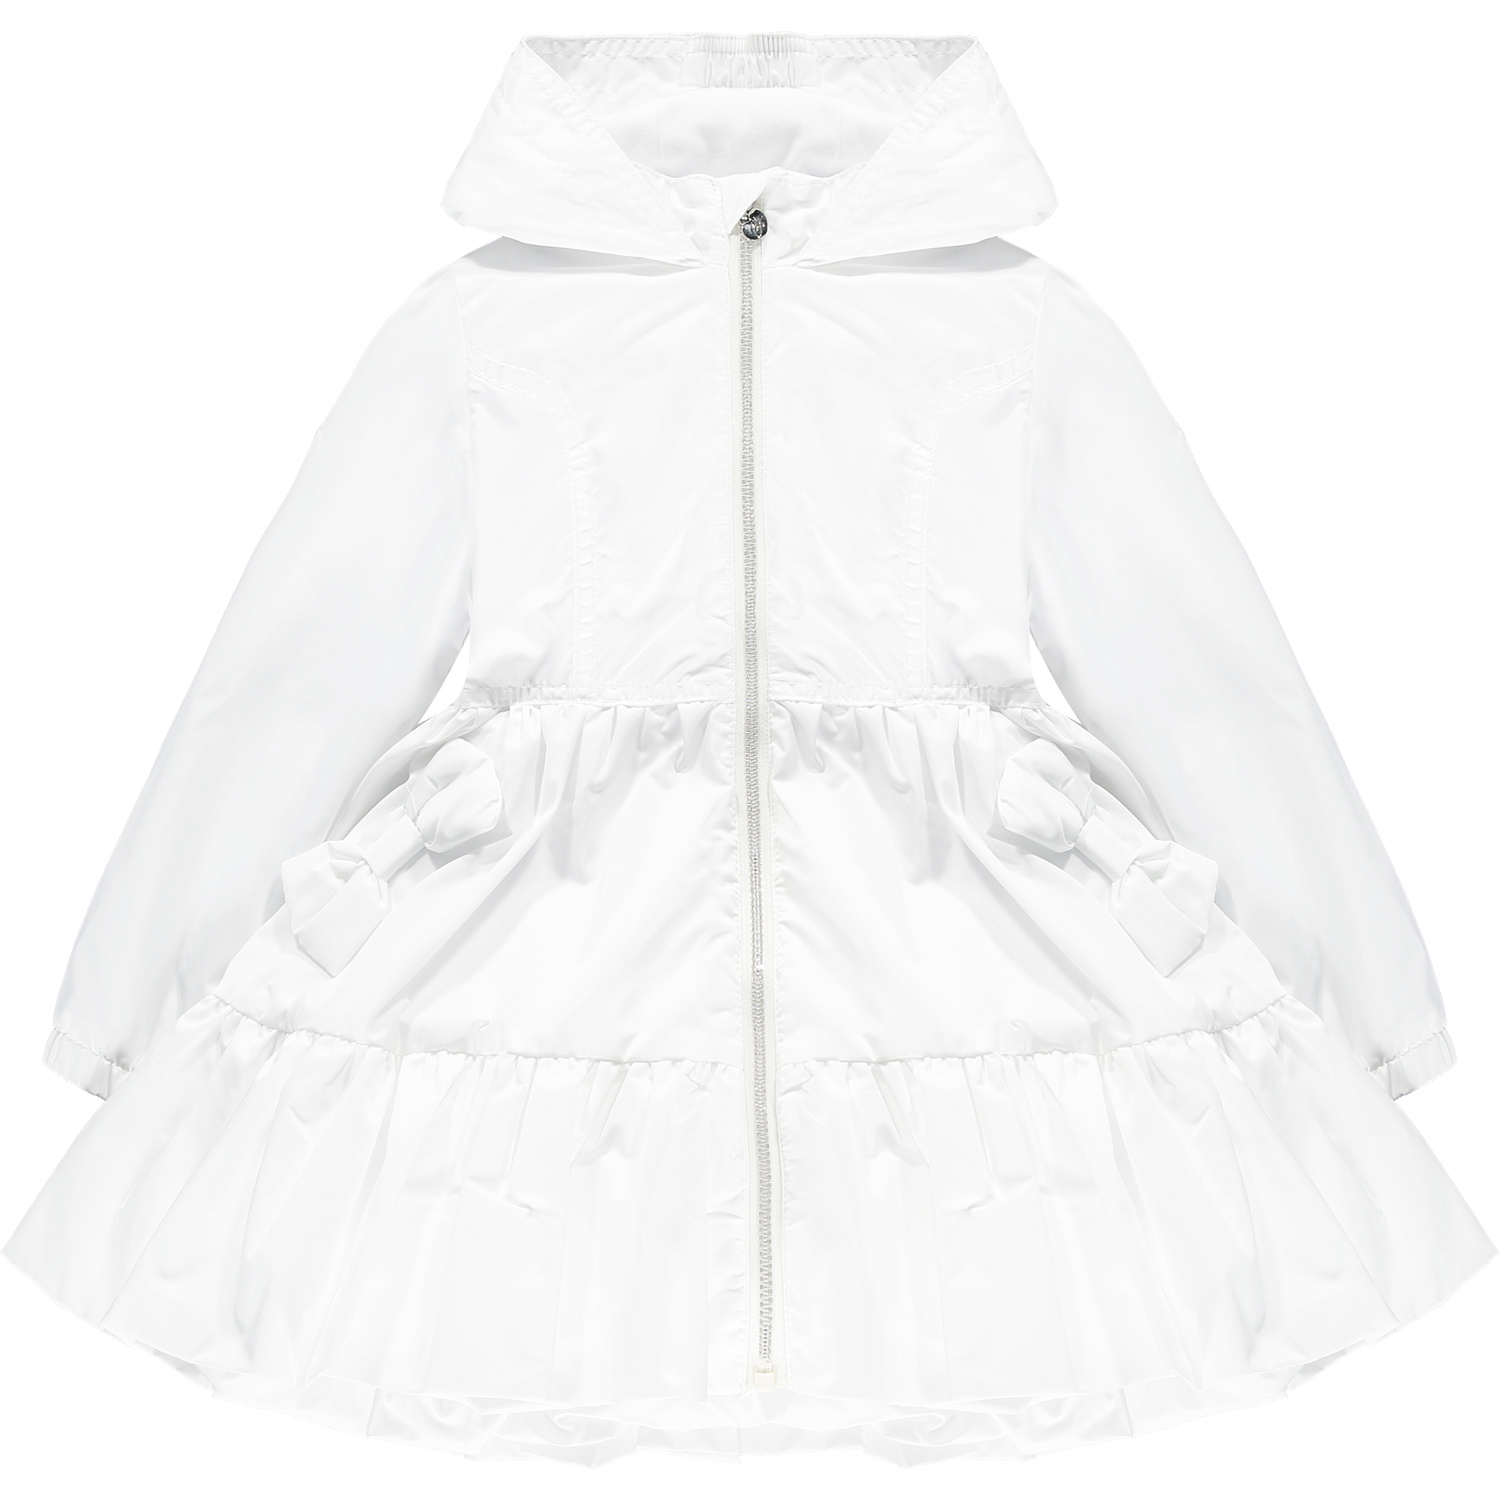 Adee Adee Lacey Wide Frill Bow Jacket White